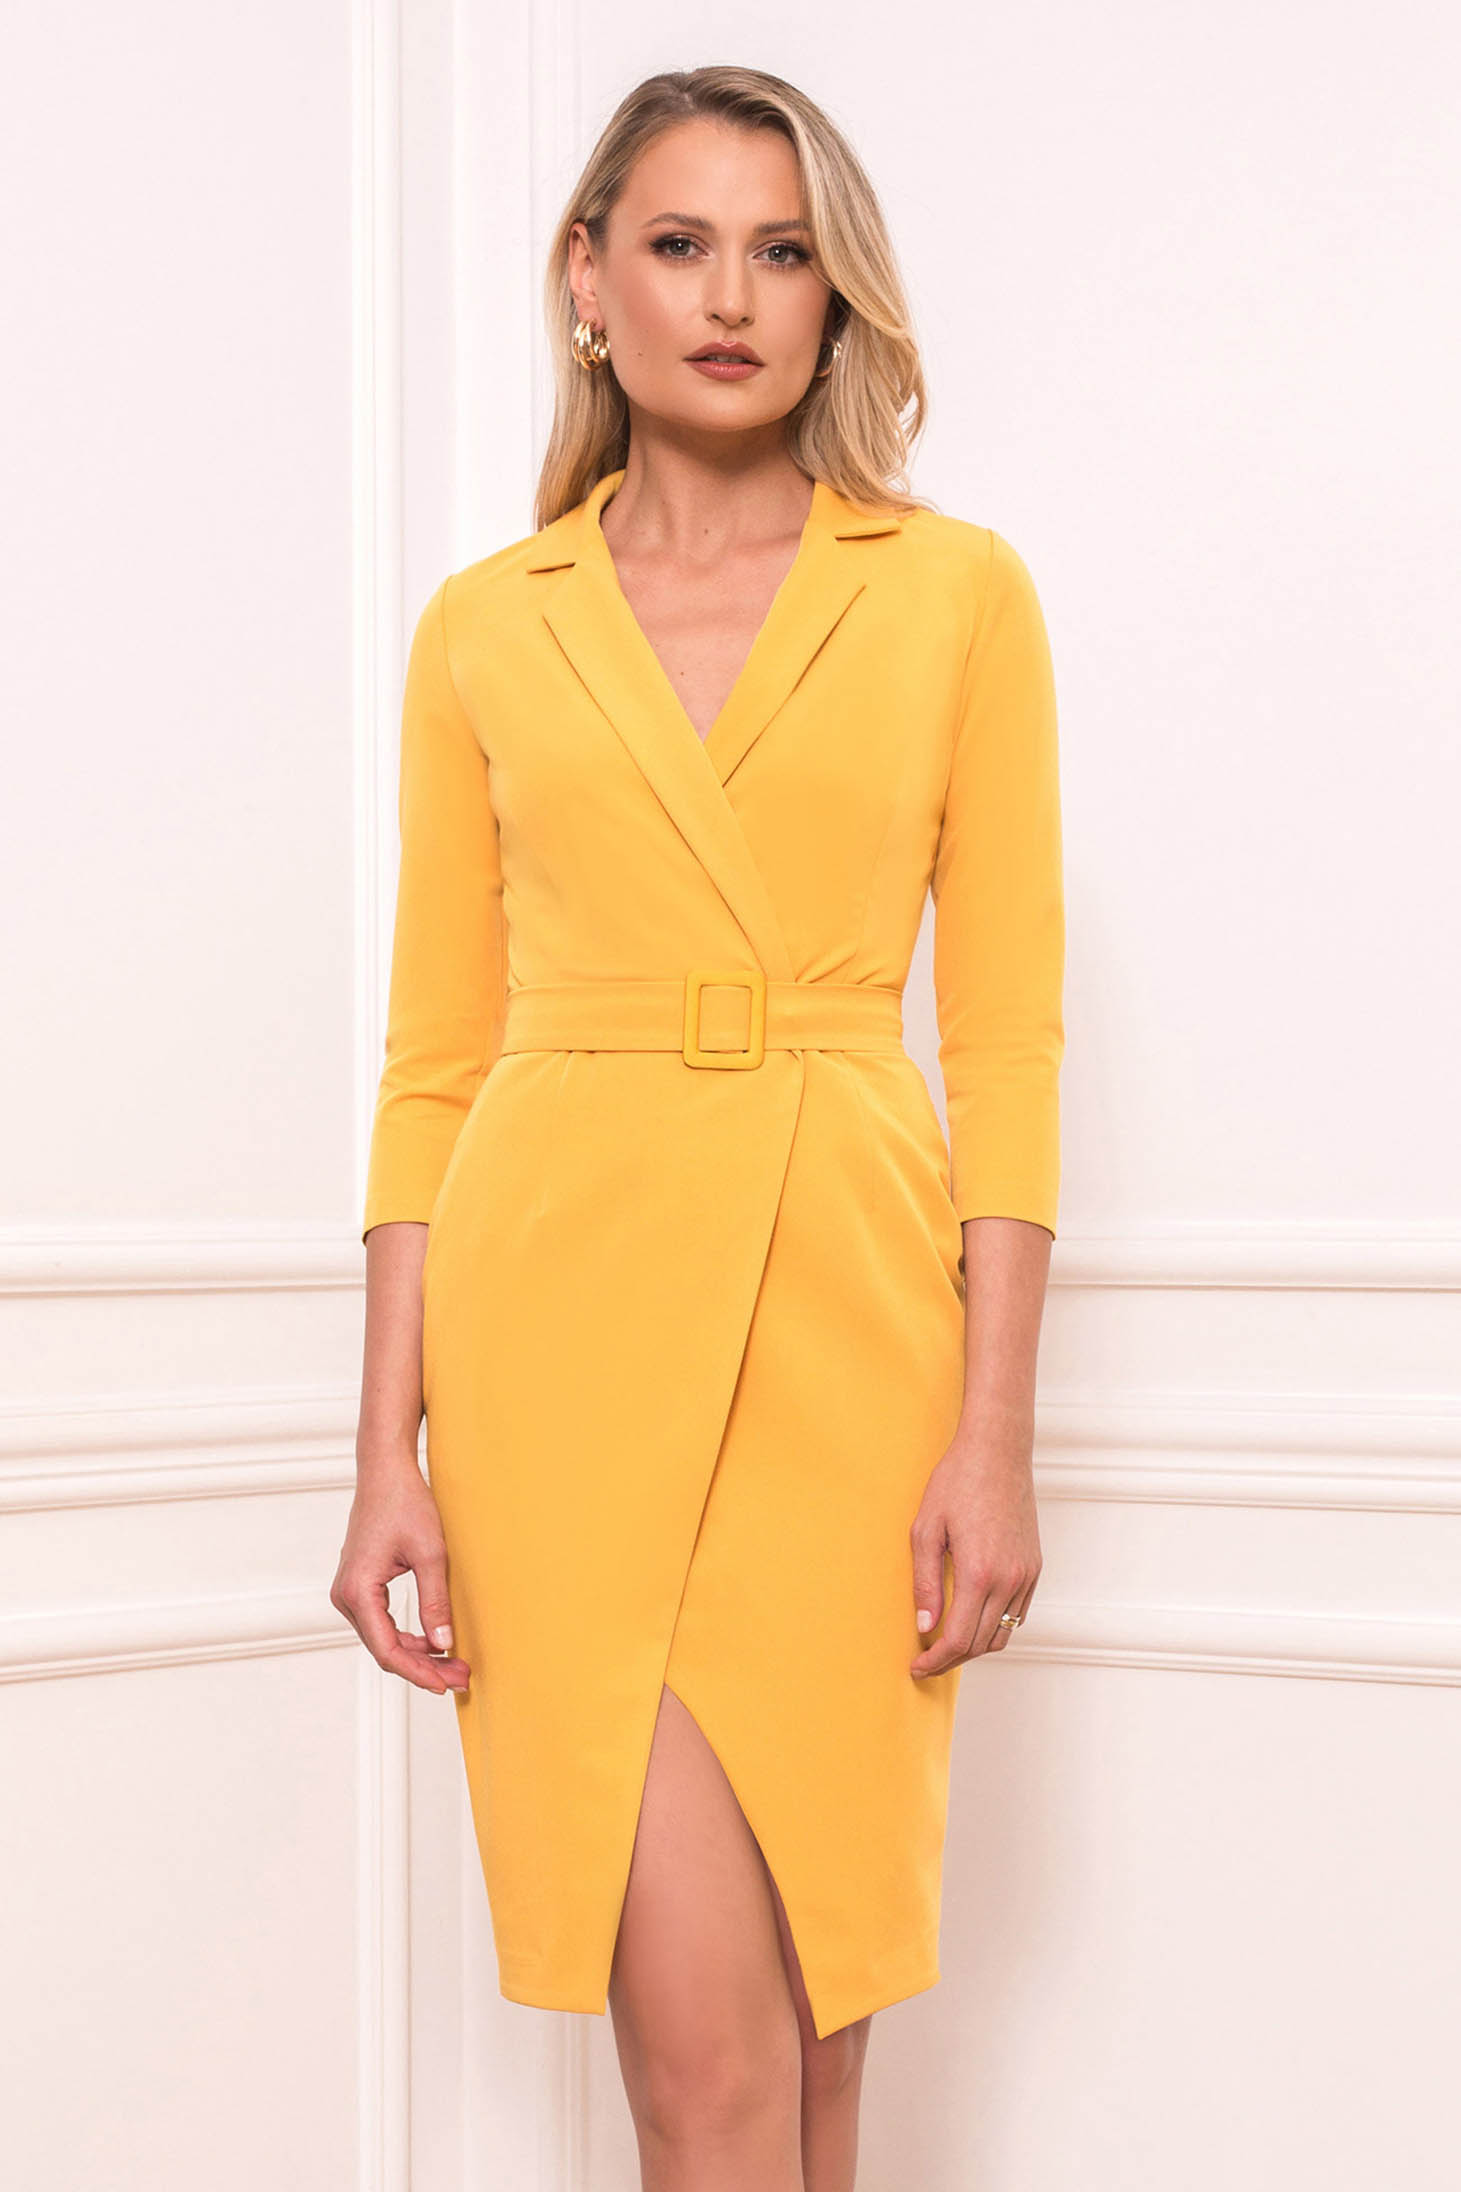 Mustard dress elegant short cut straight with 3/4 sleeves wrap over skirt accessorized with belt